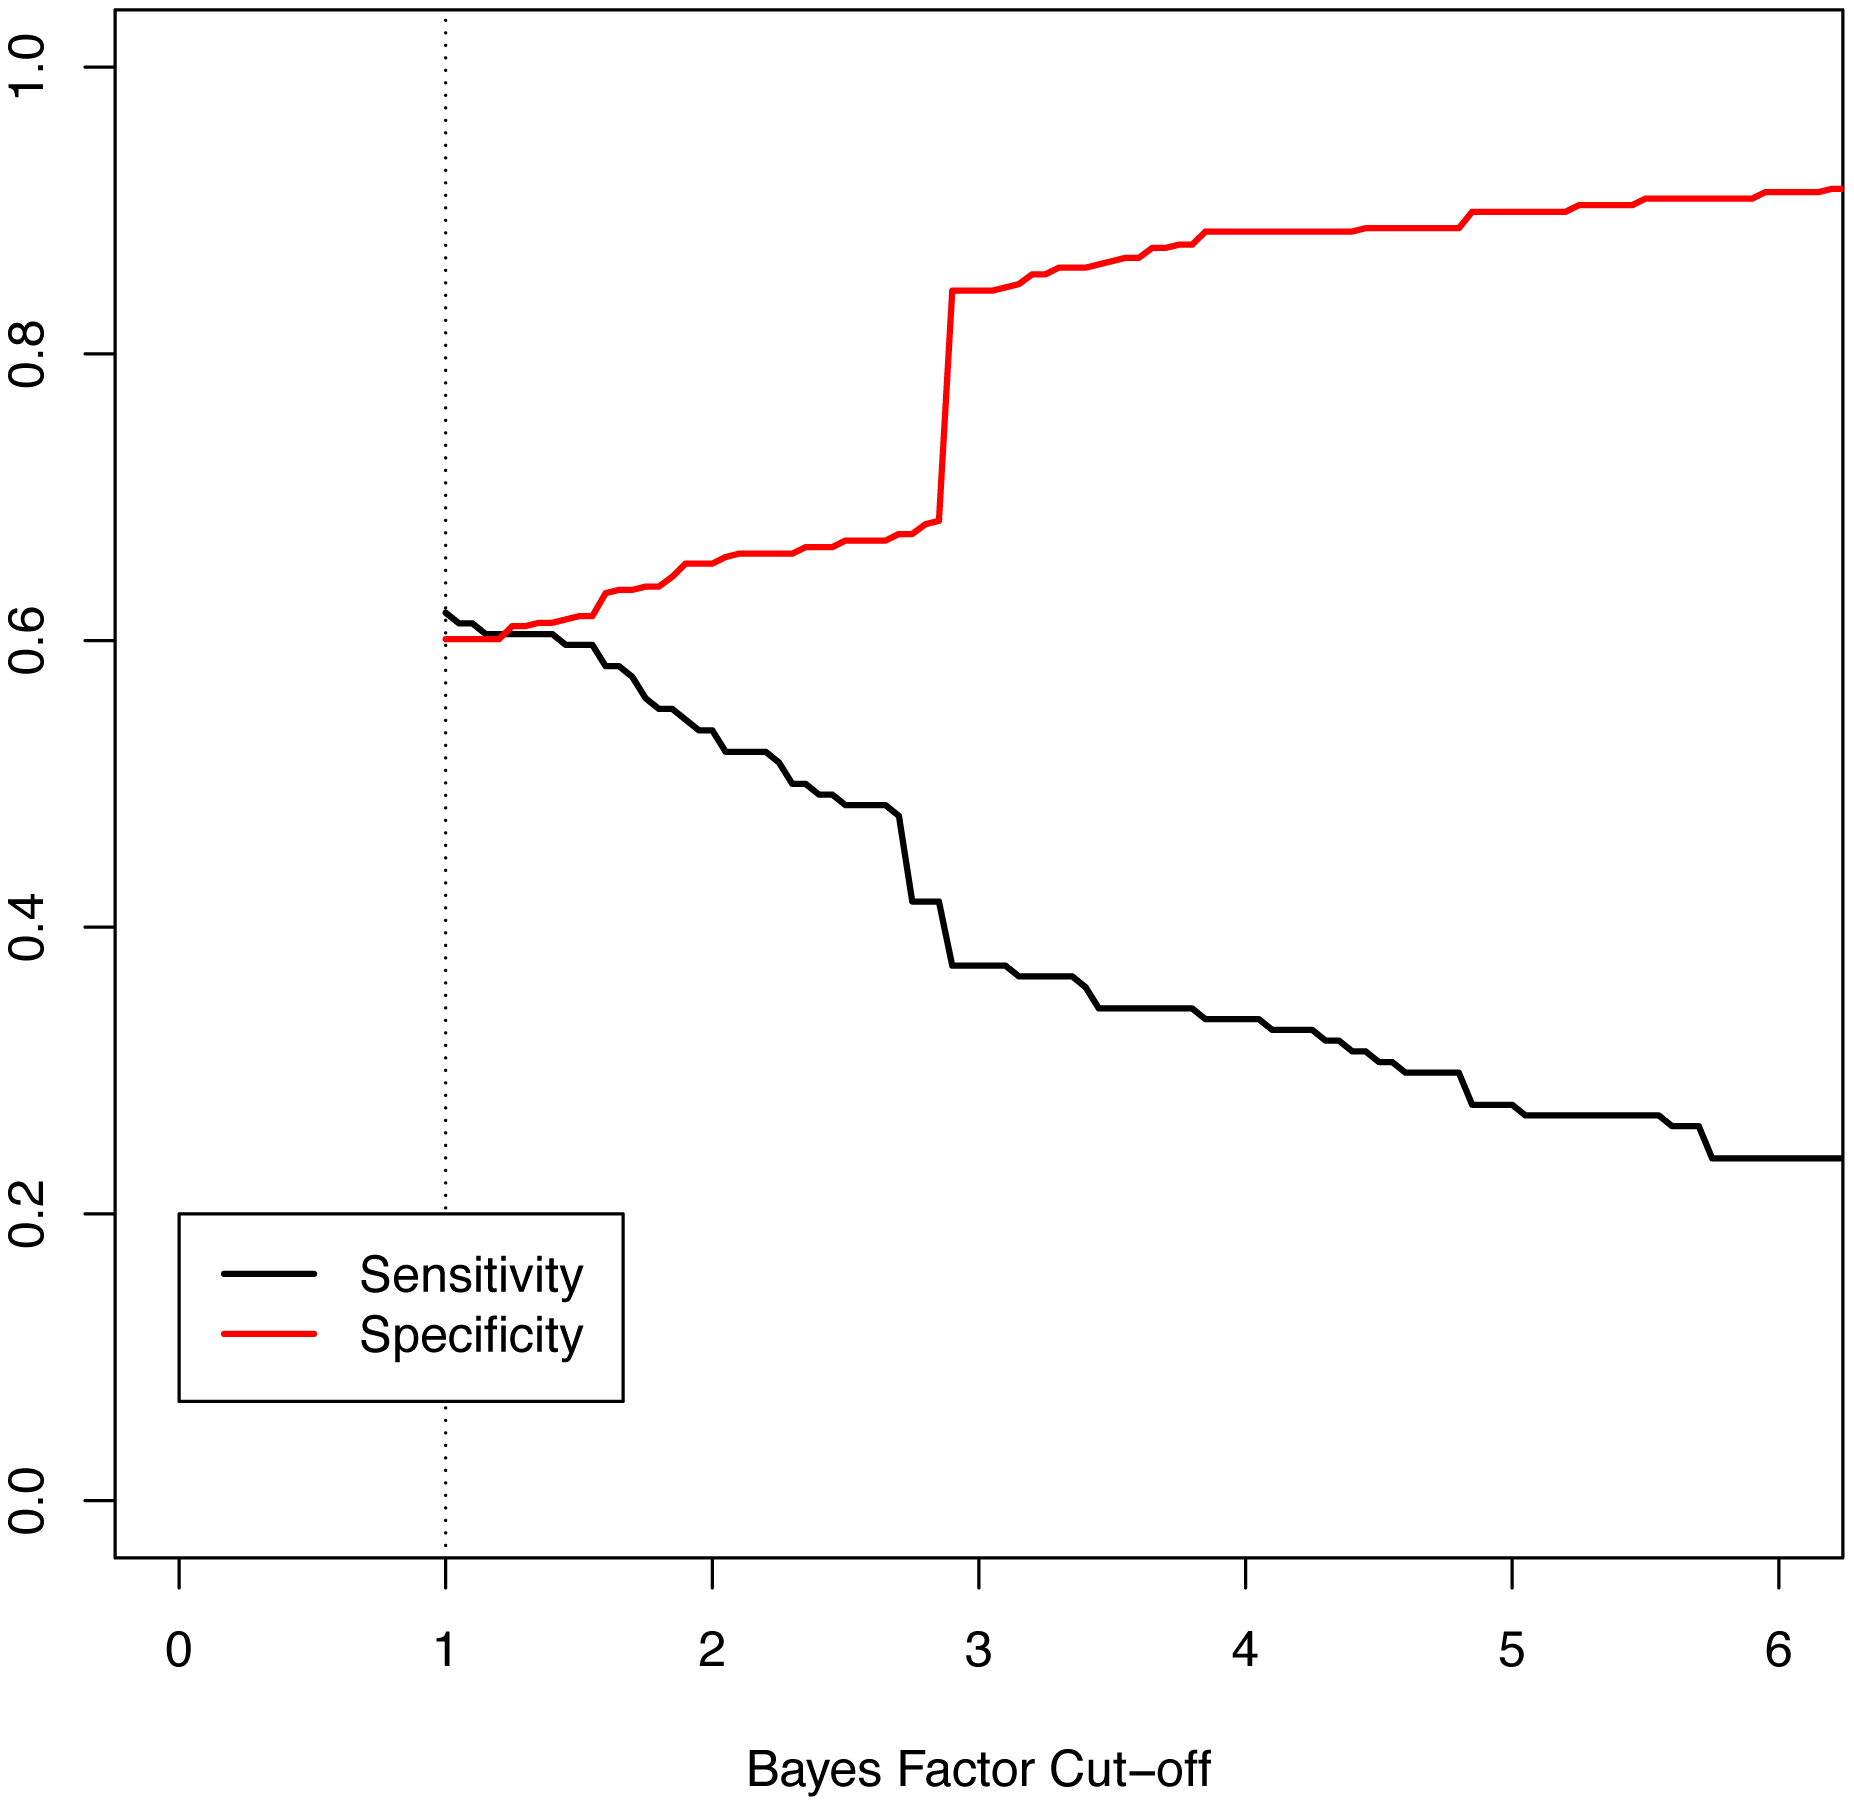 Measures of performance of the Bayes factor to discriminate epilepsy phenotype.